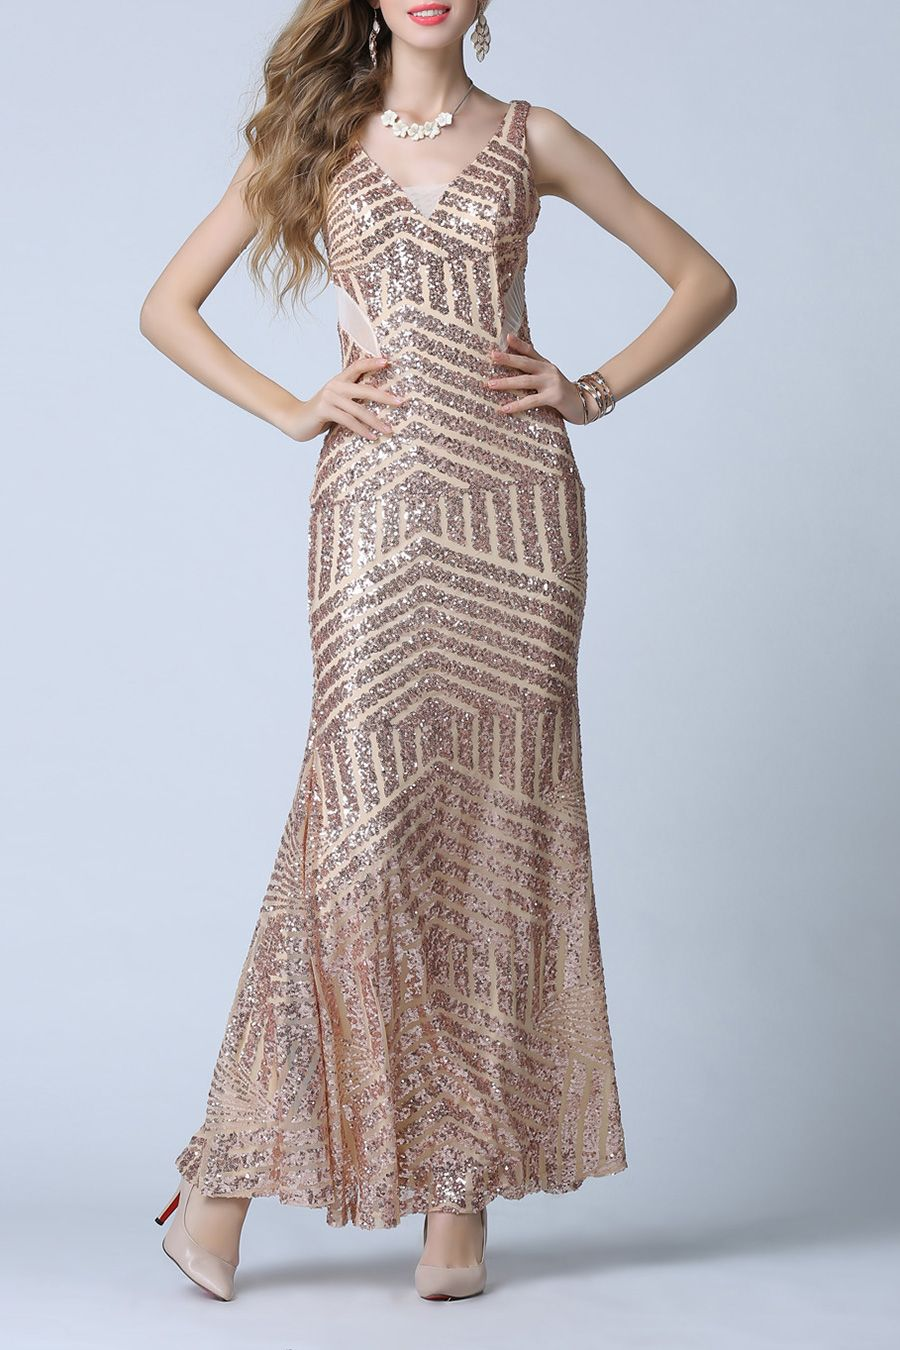 c91da2bee4 Backless Sequined Bodycon Dress